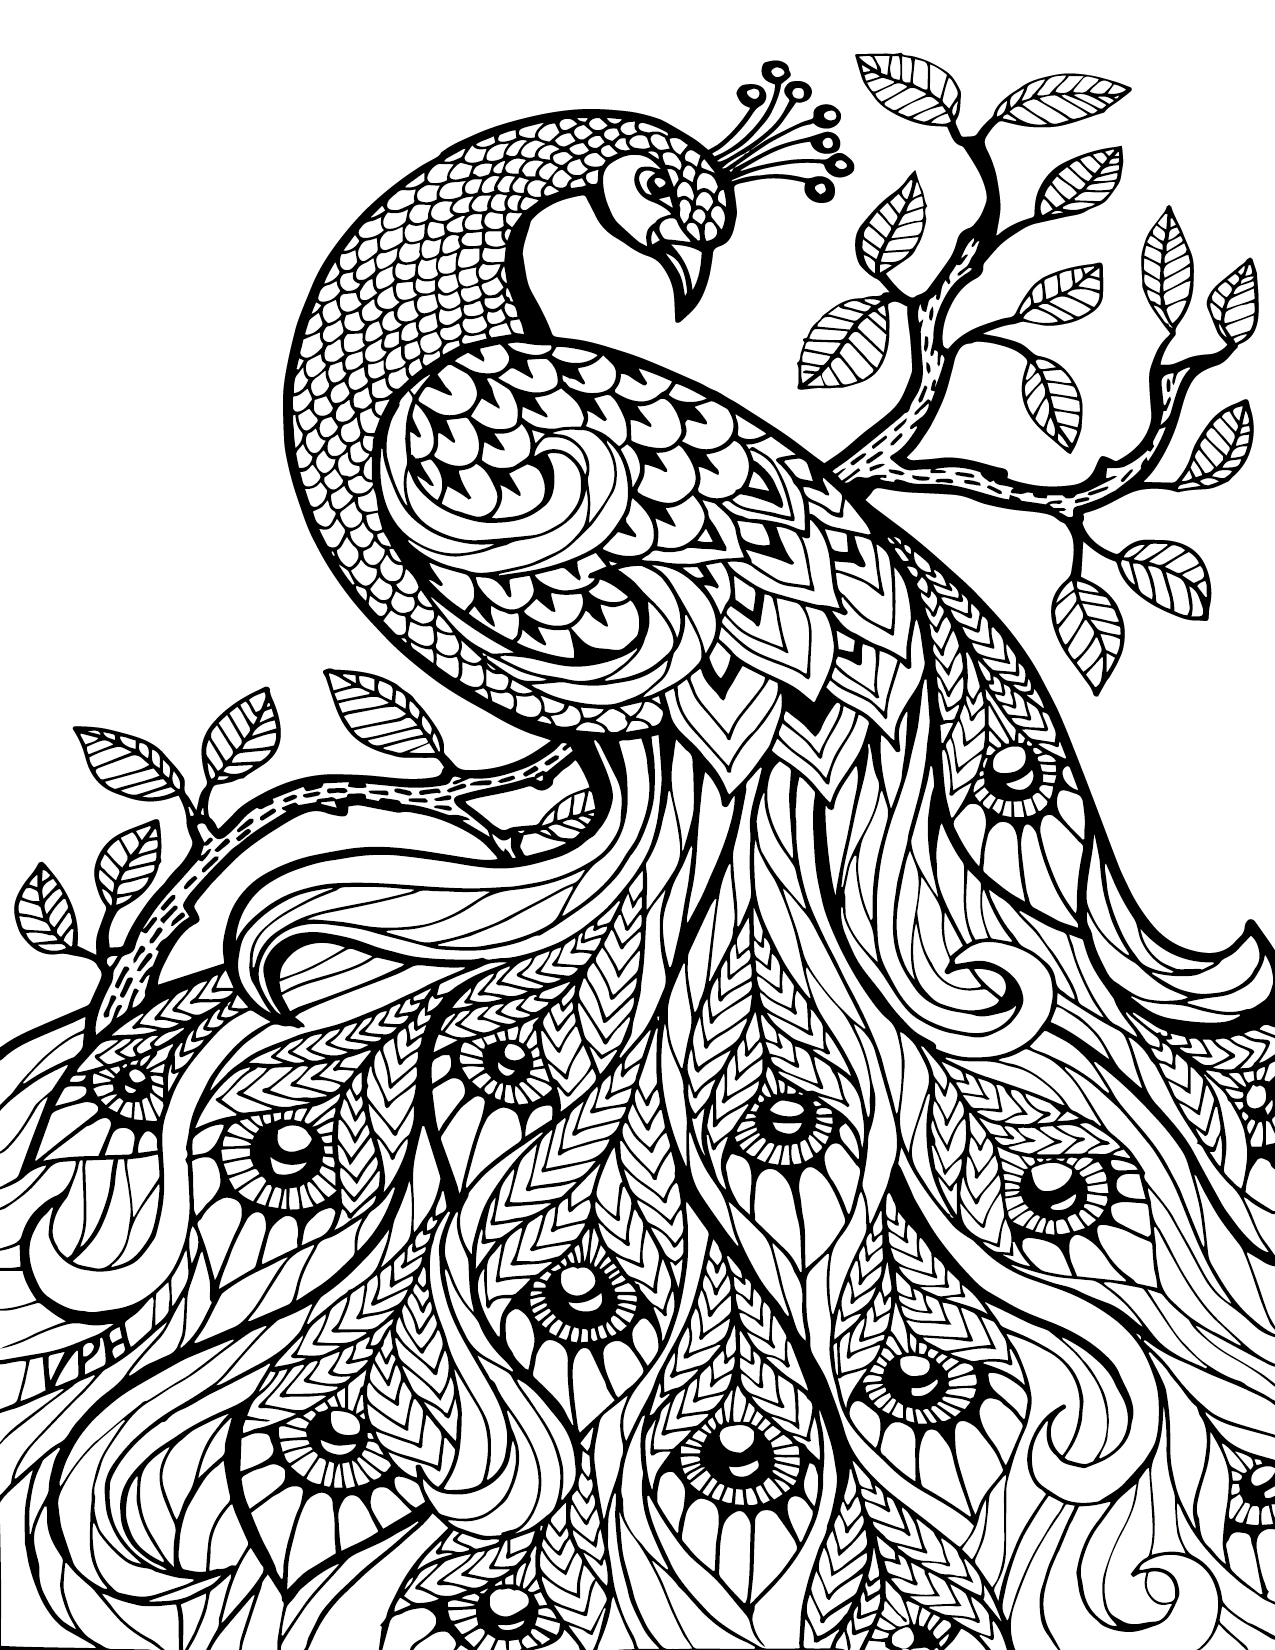 Free coloring pages landscapes printables